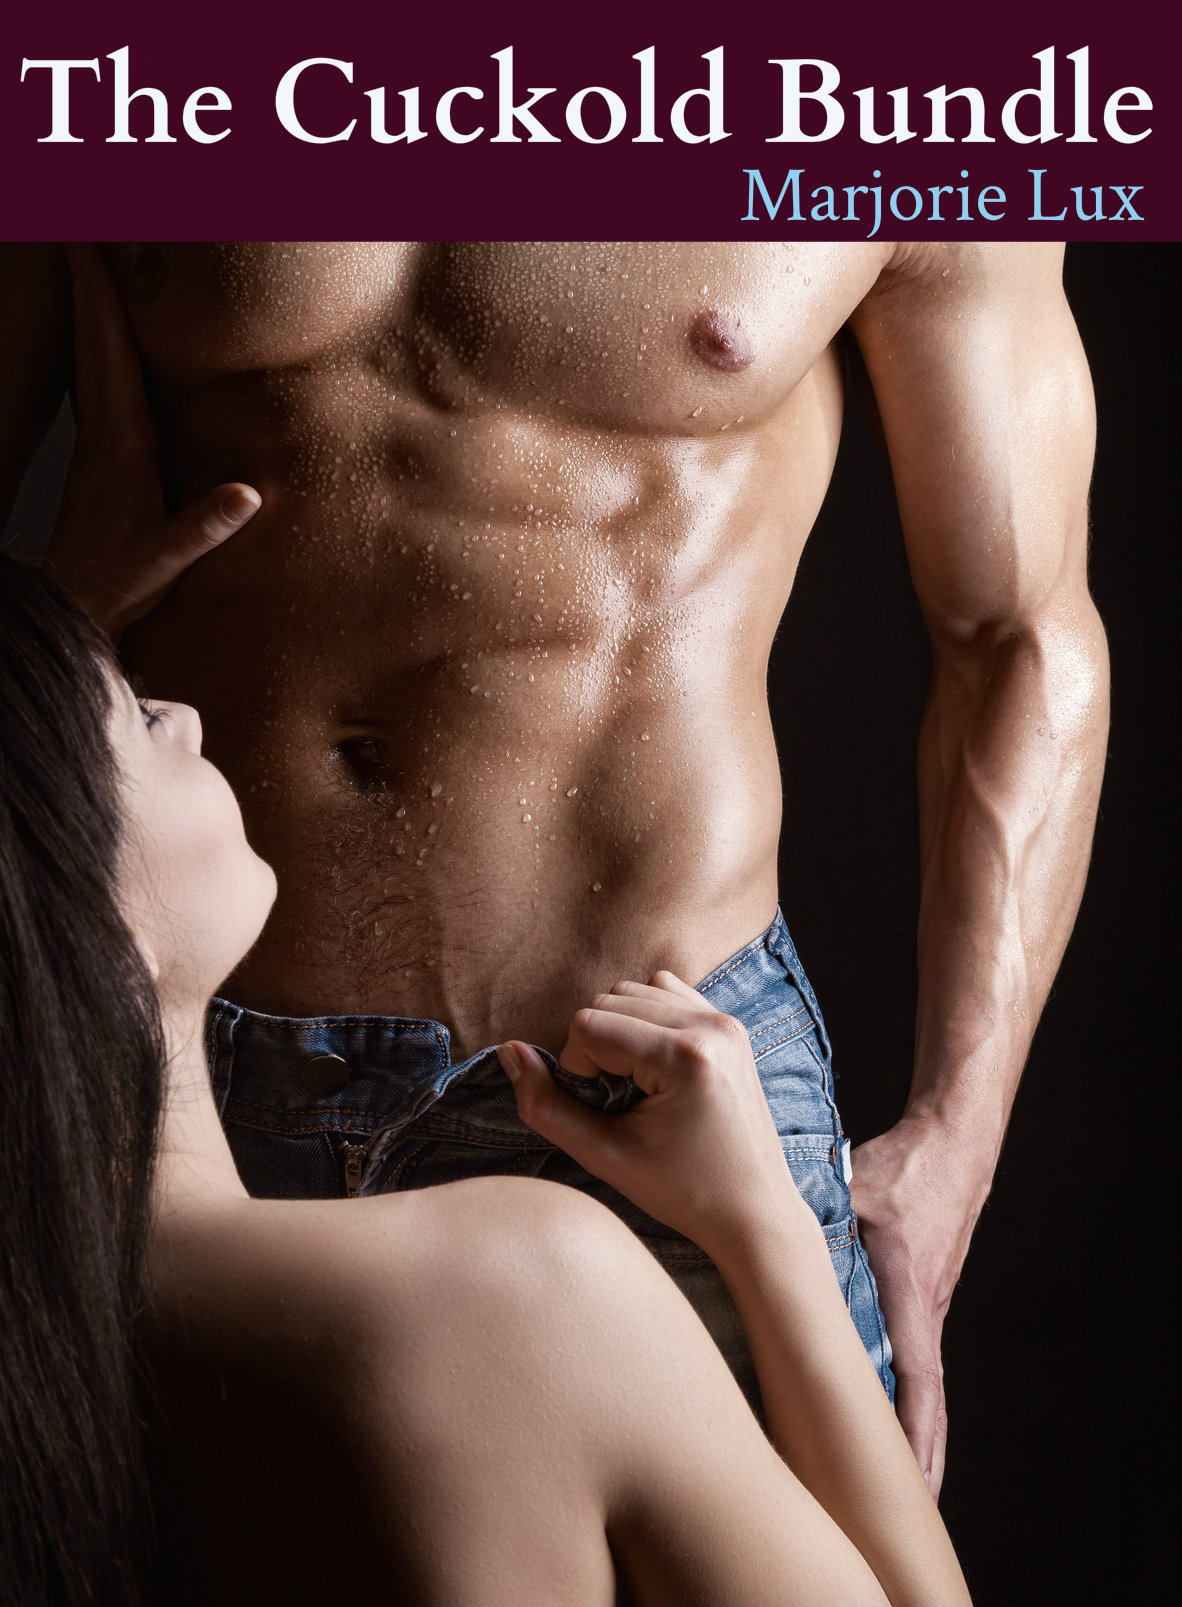 Marjorie Lux - The Cuckold Bundle (3 Hotwife Cheating Stories)